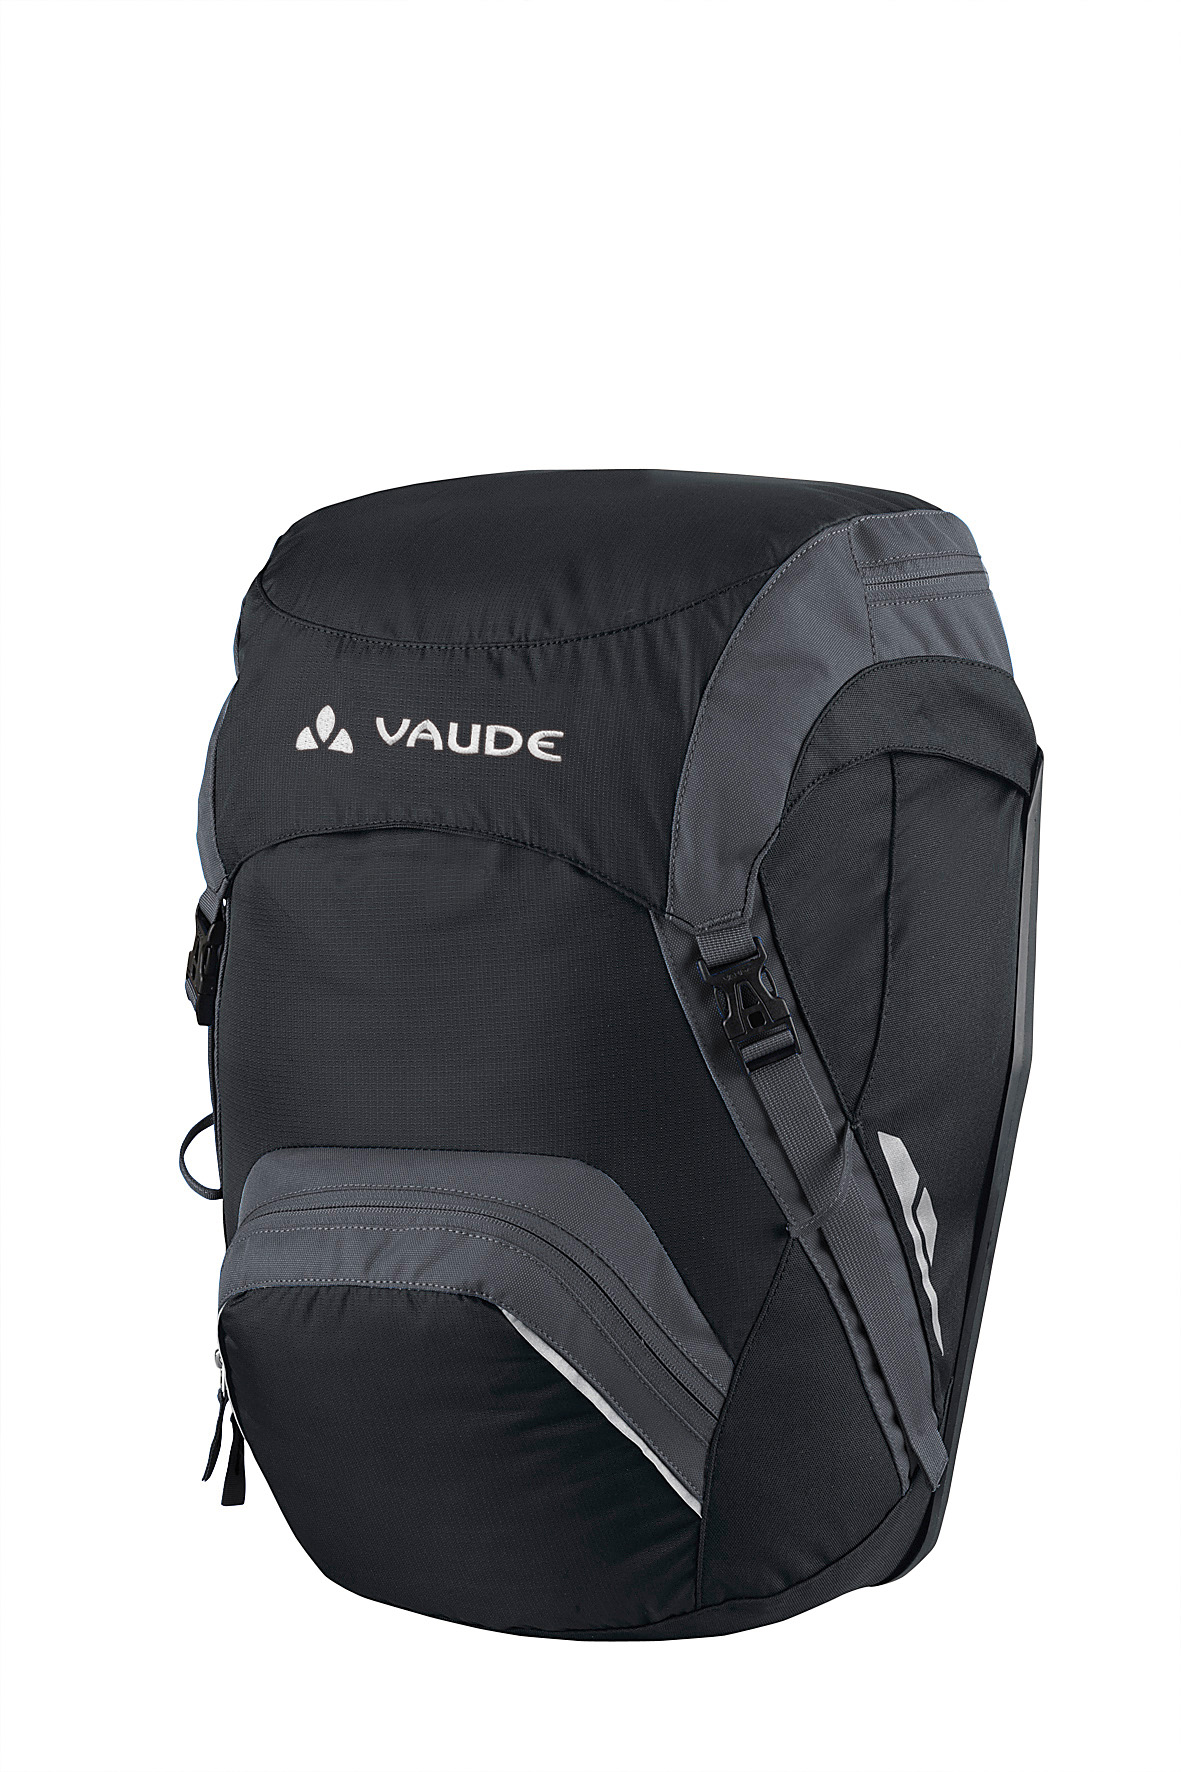 VAUDE Road Master Front black/anthracite  - schneider-sports